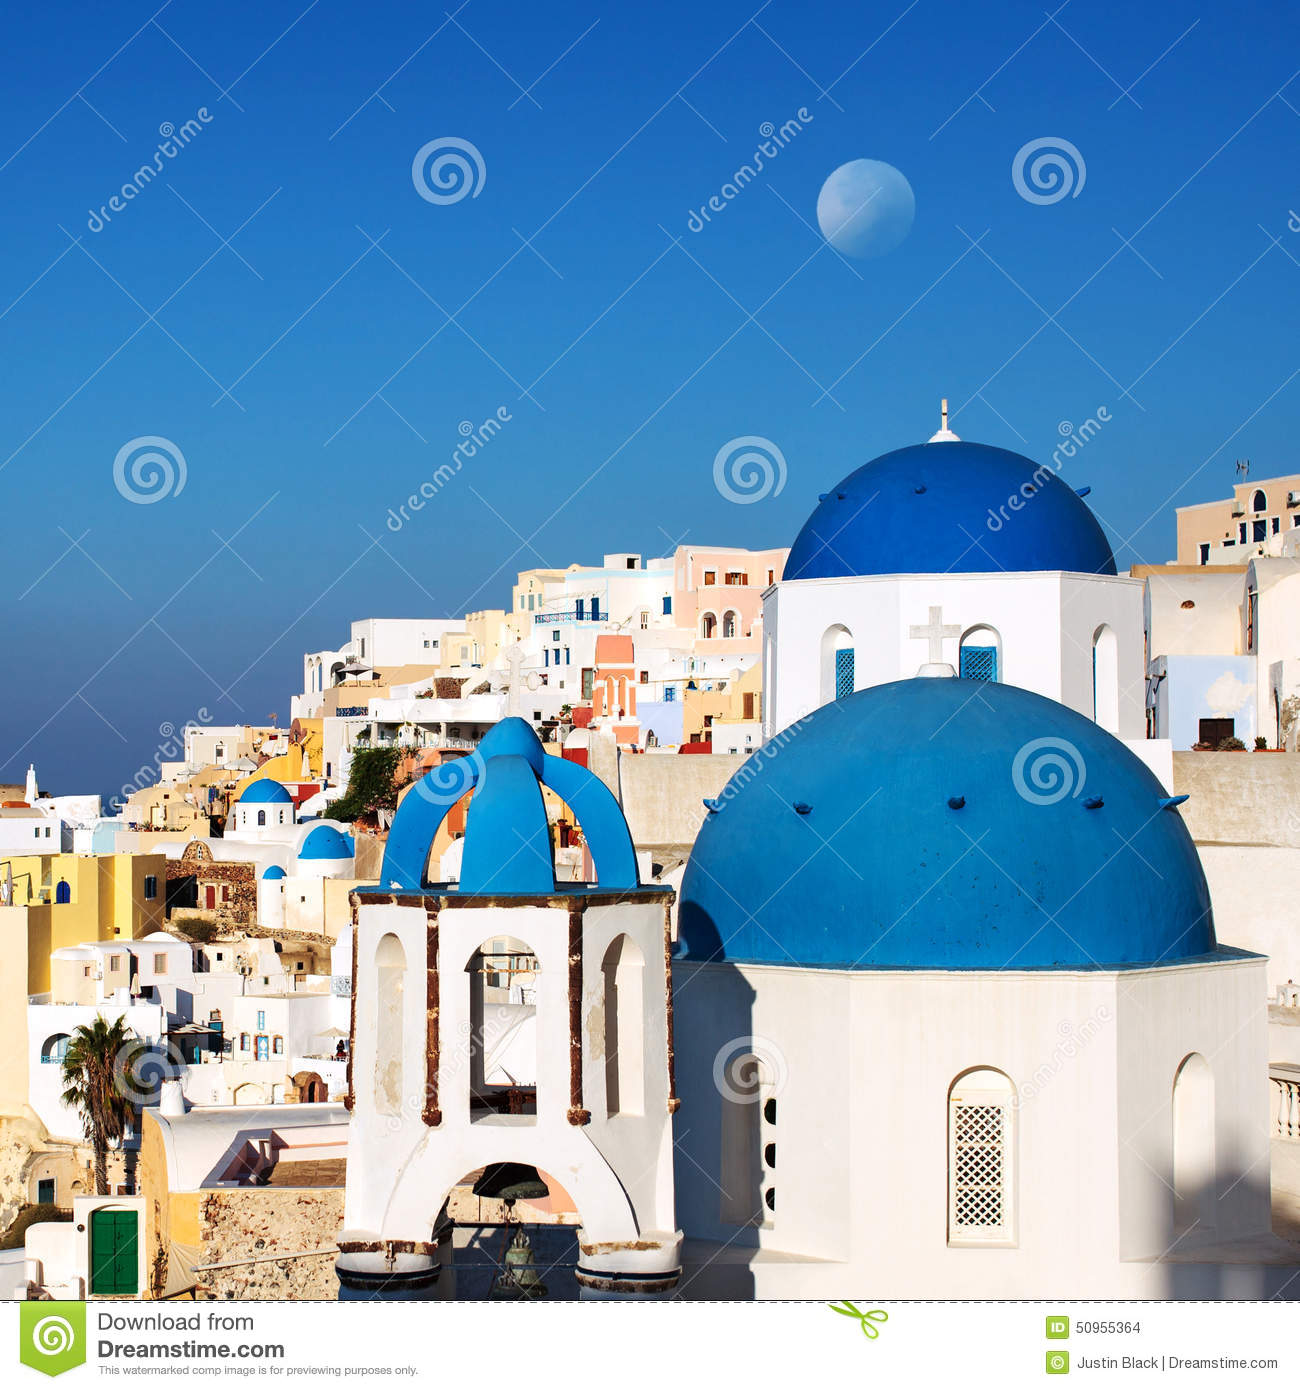 Santorini blue dome churches with moon. Oia Village, Greece.